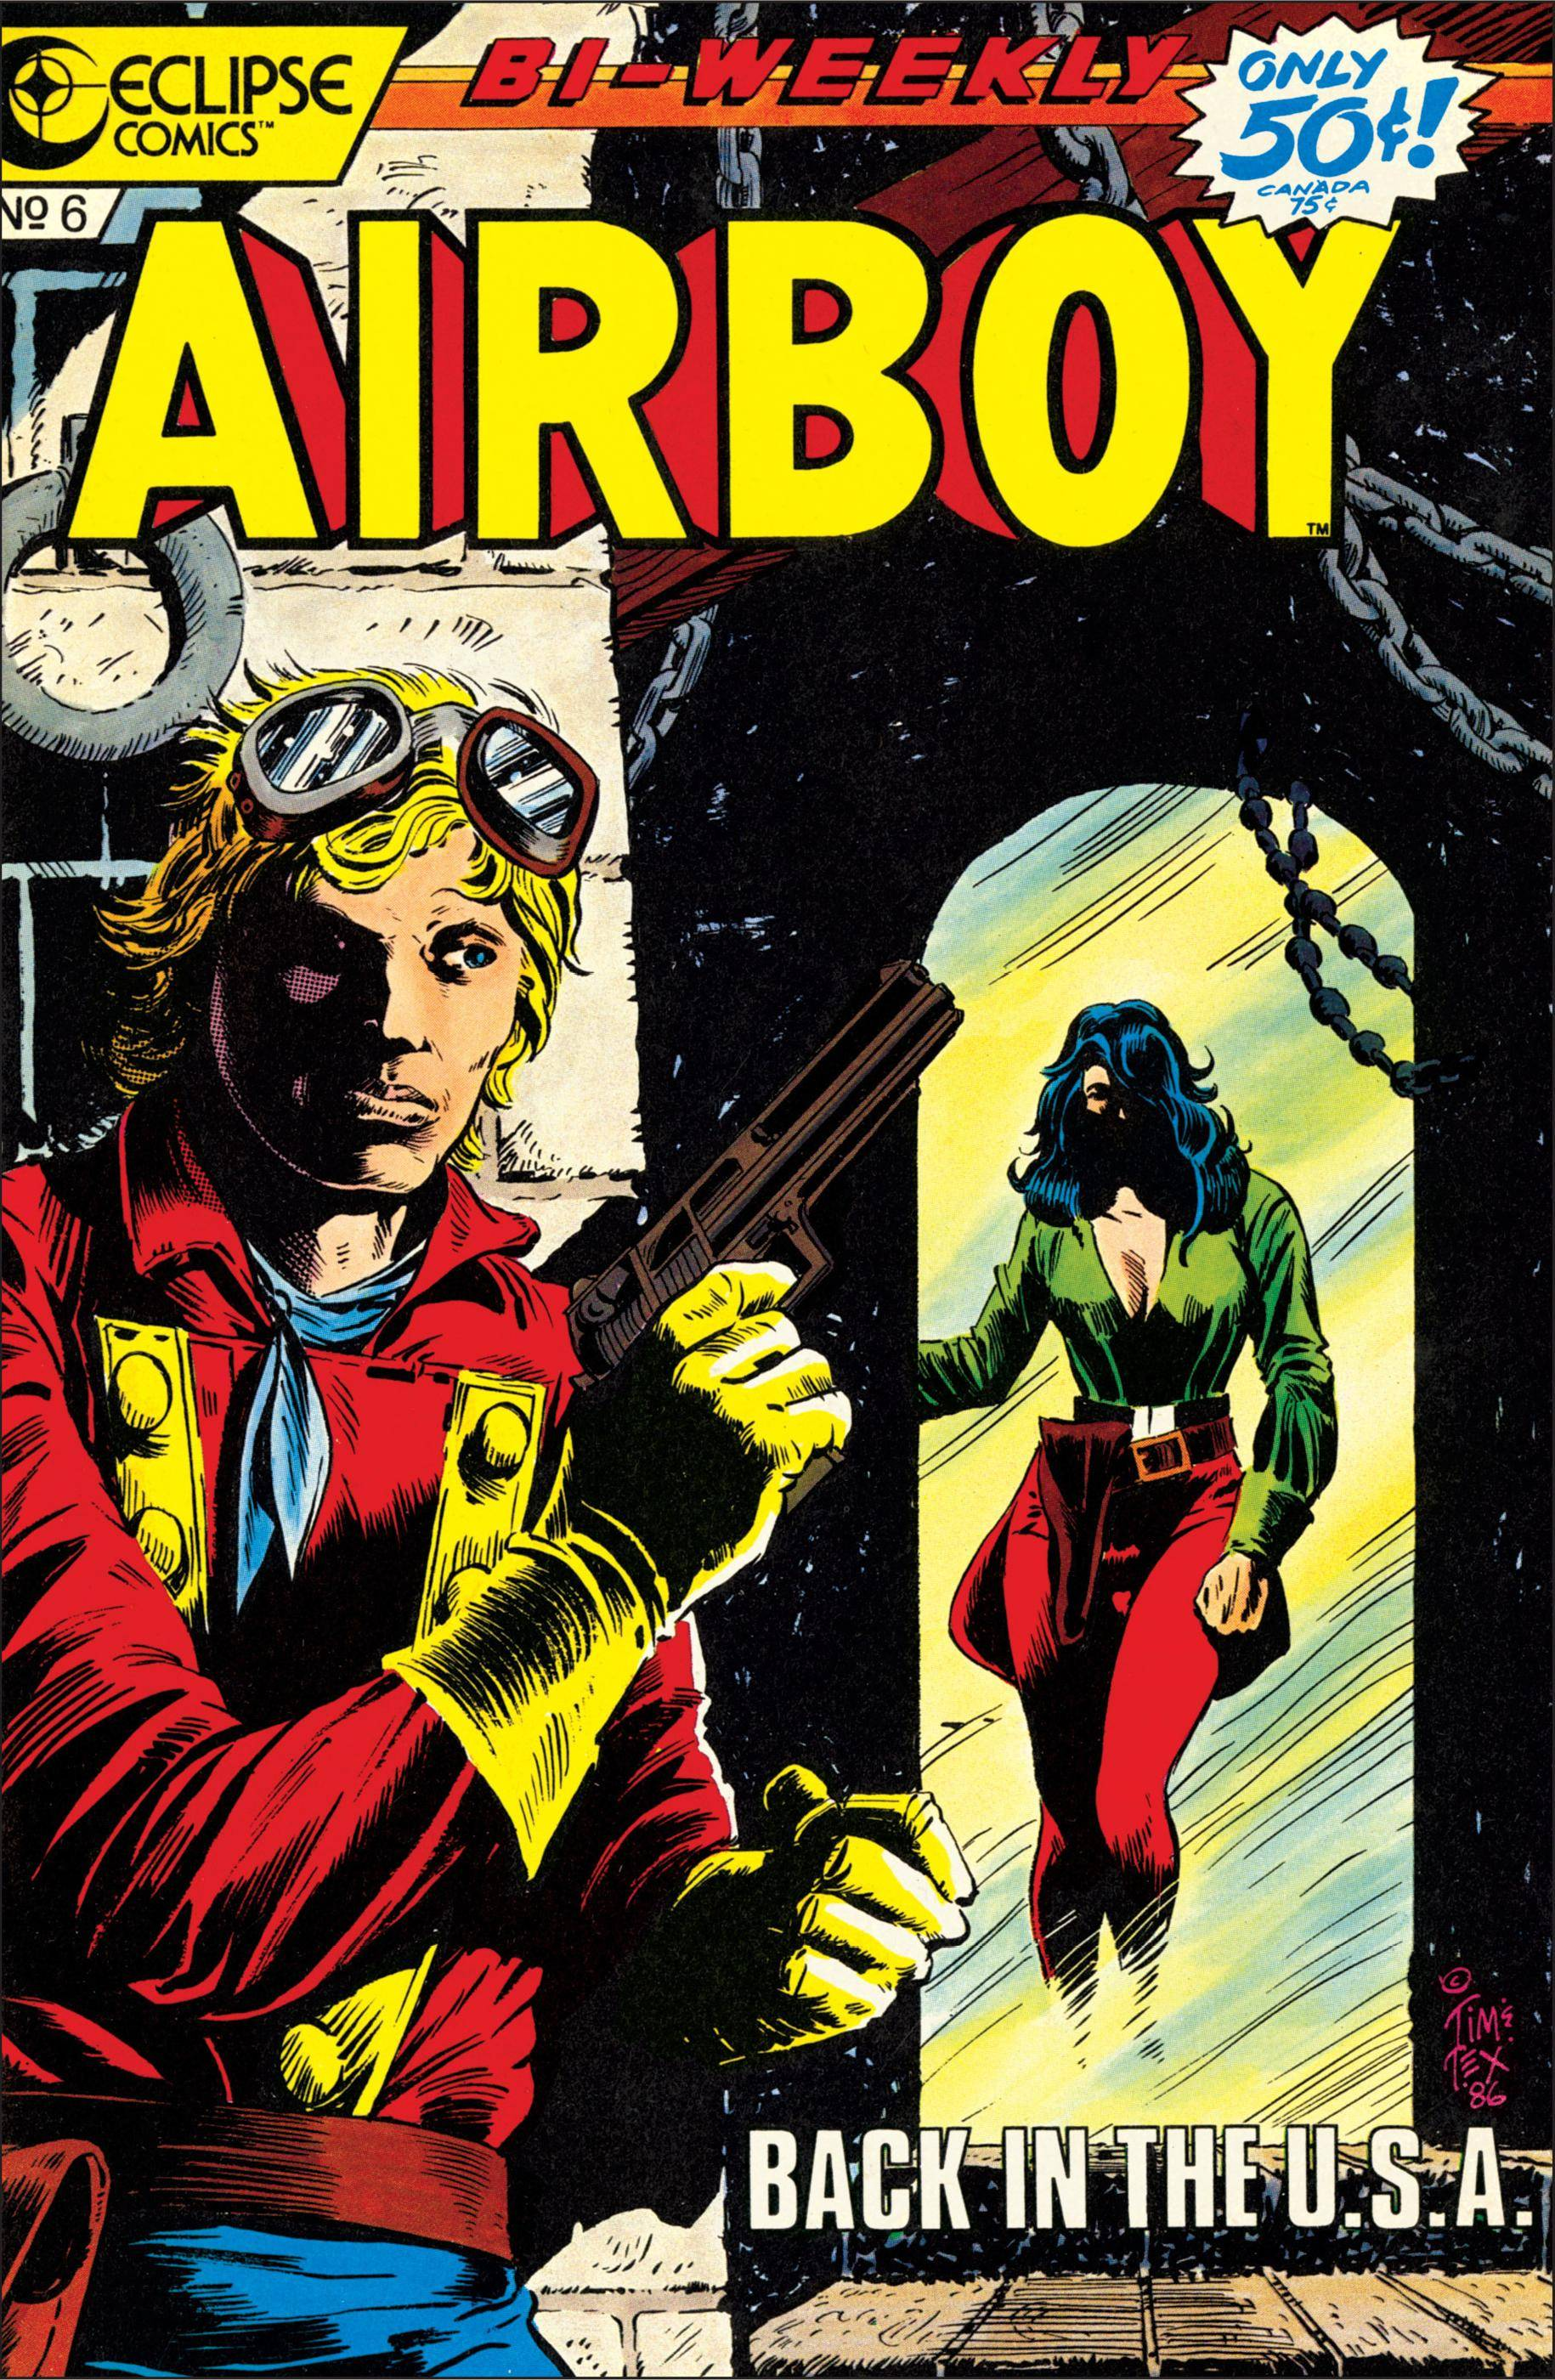 Bronze Age reboot of a Golden Age classic - Airboy 006 1986 Digital Eclipse Comics cbr